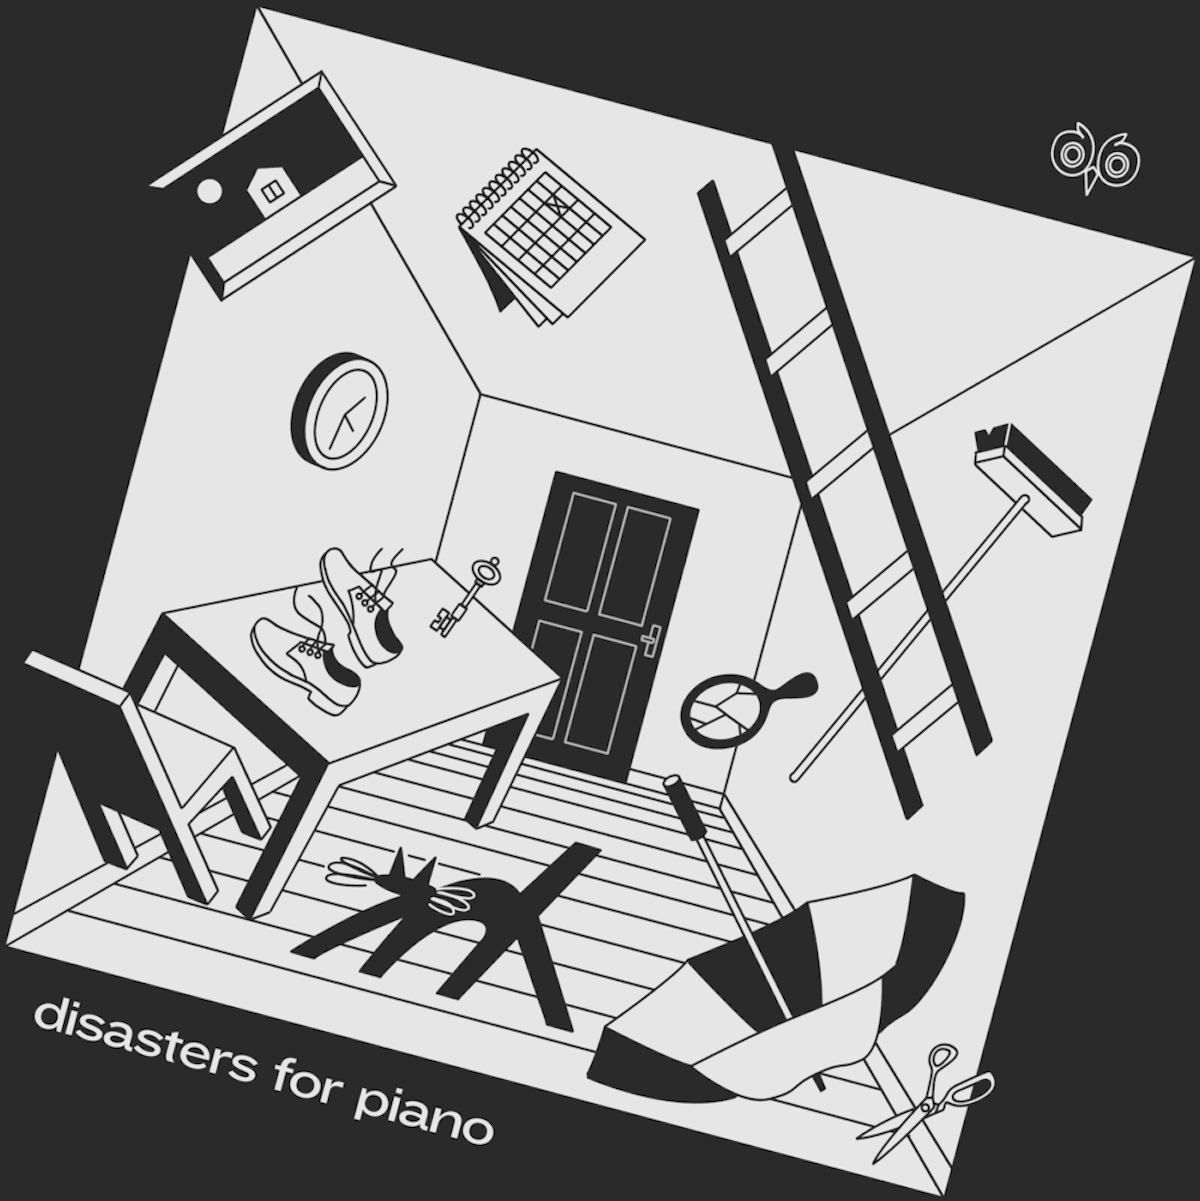 Cover artwork for Disasters for Piano by Nicolas Ménard